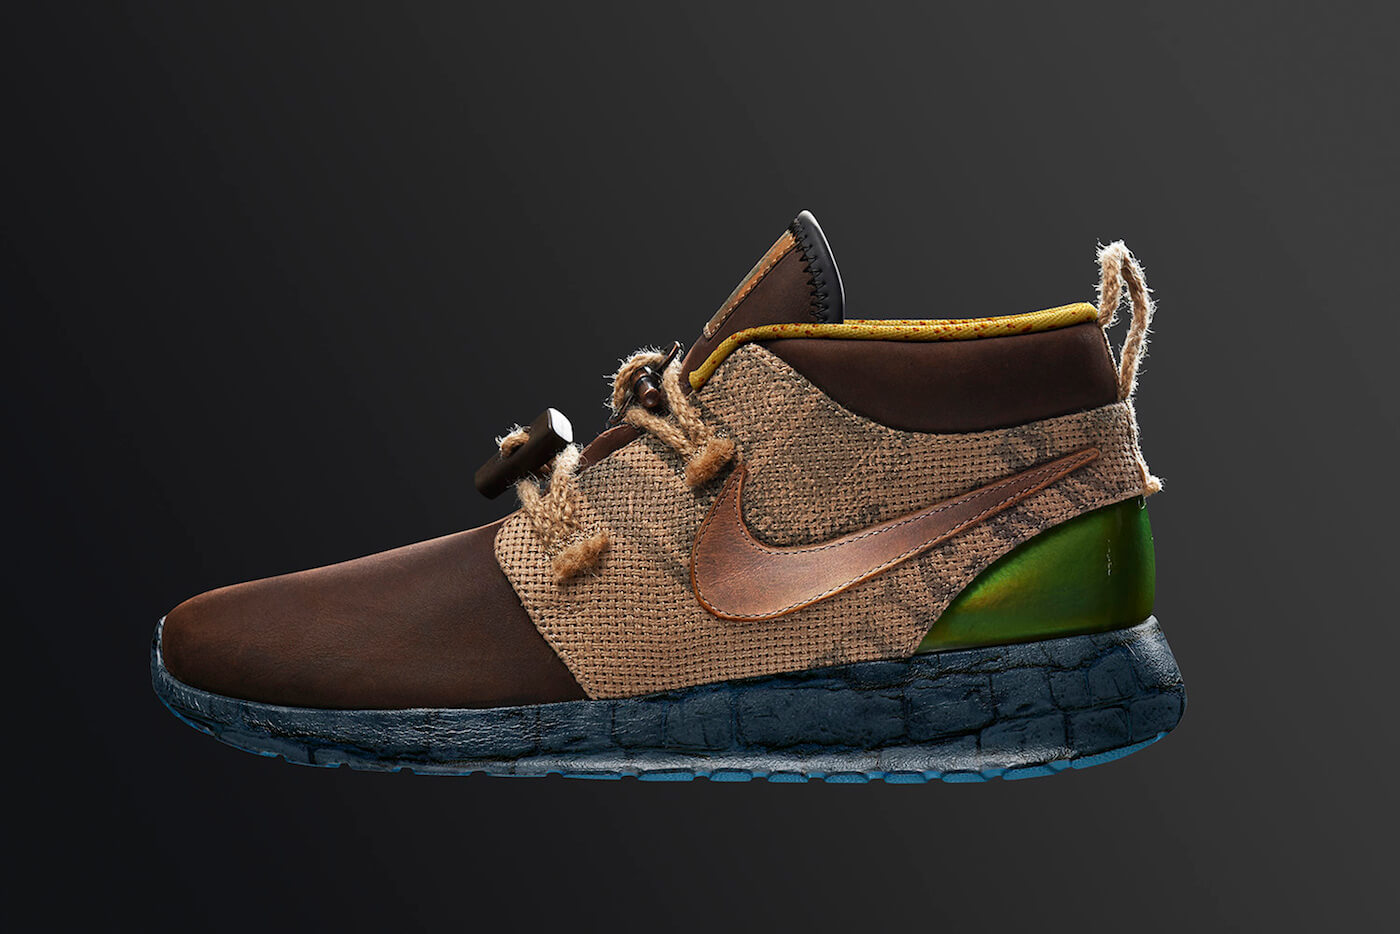 Laika nike shoes the boxtrolls 2